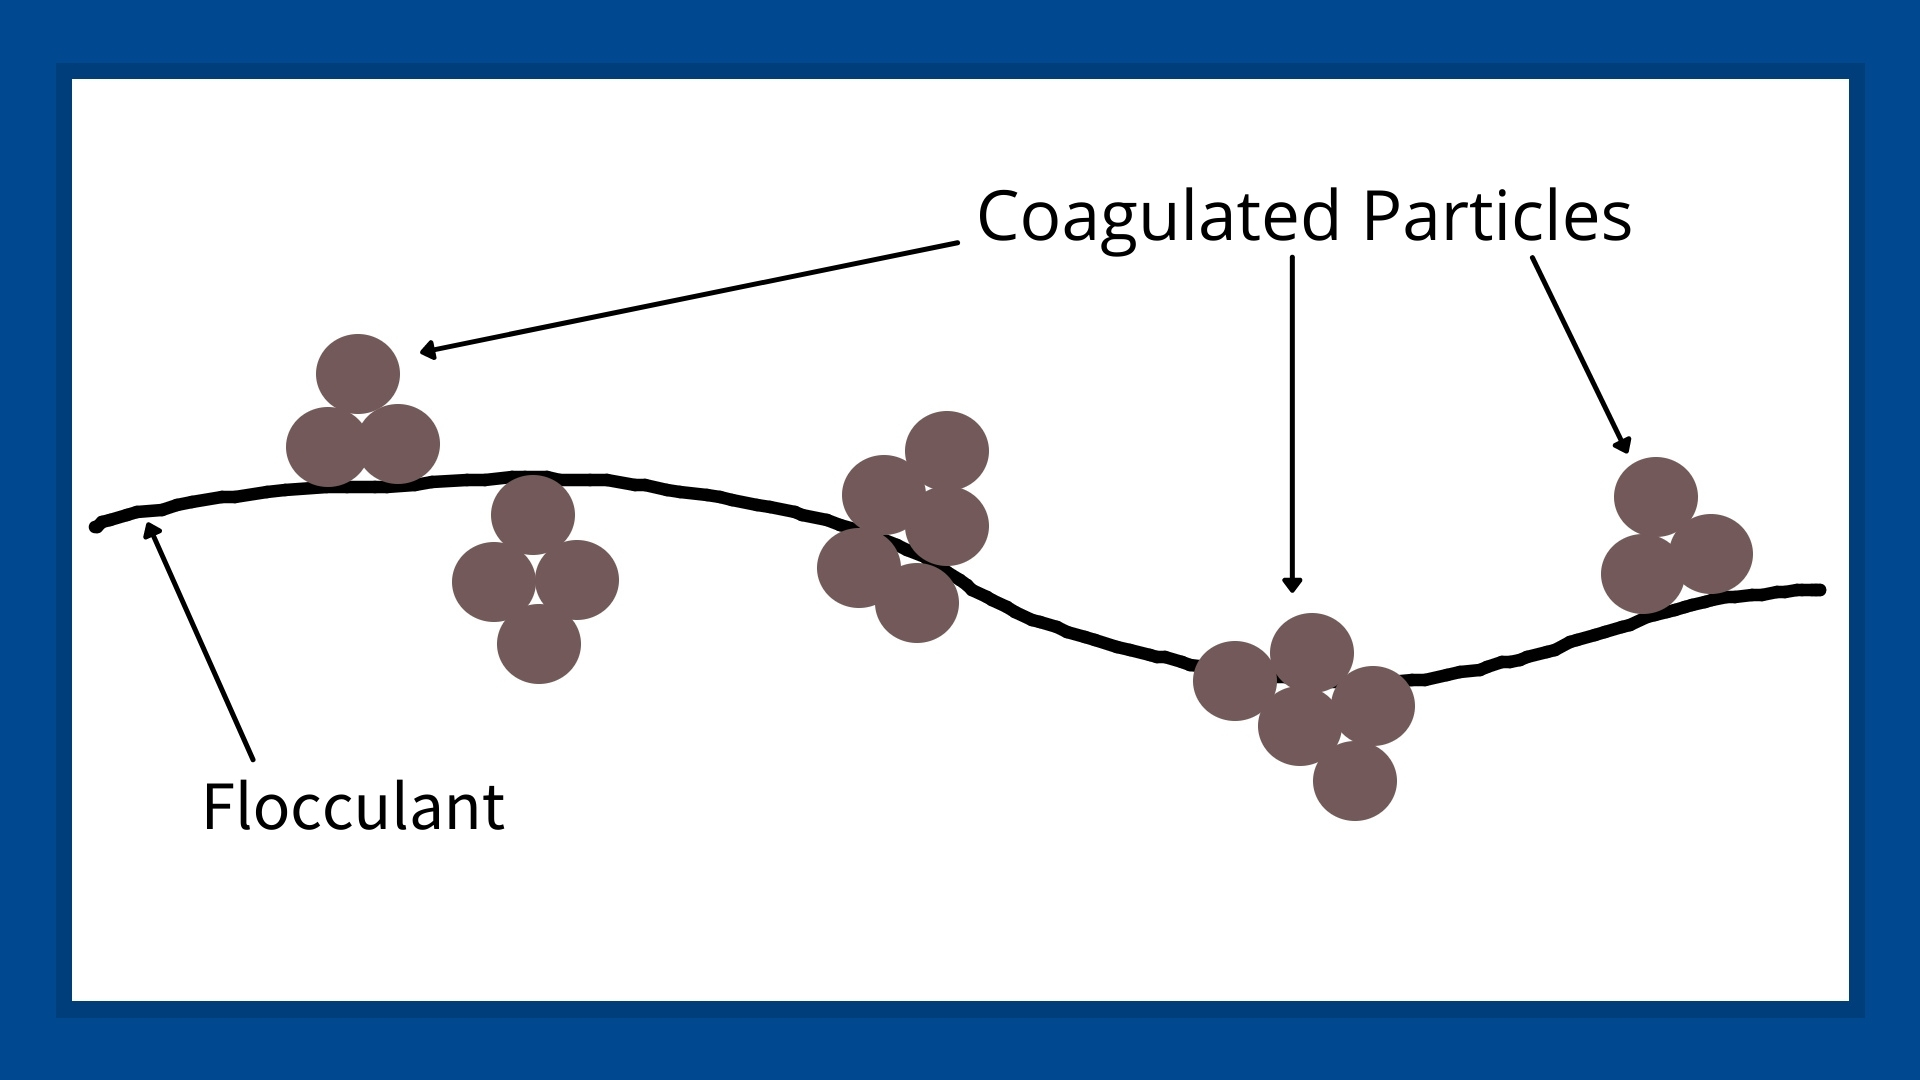 This image shows the coagulated particles being pulled together by a flocculant to form larger particles.